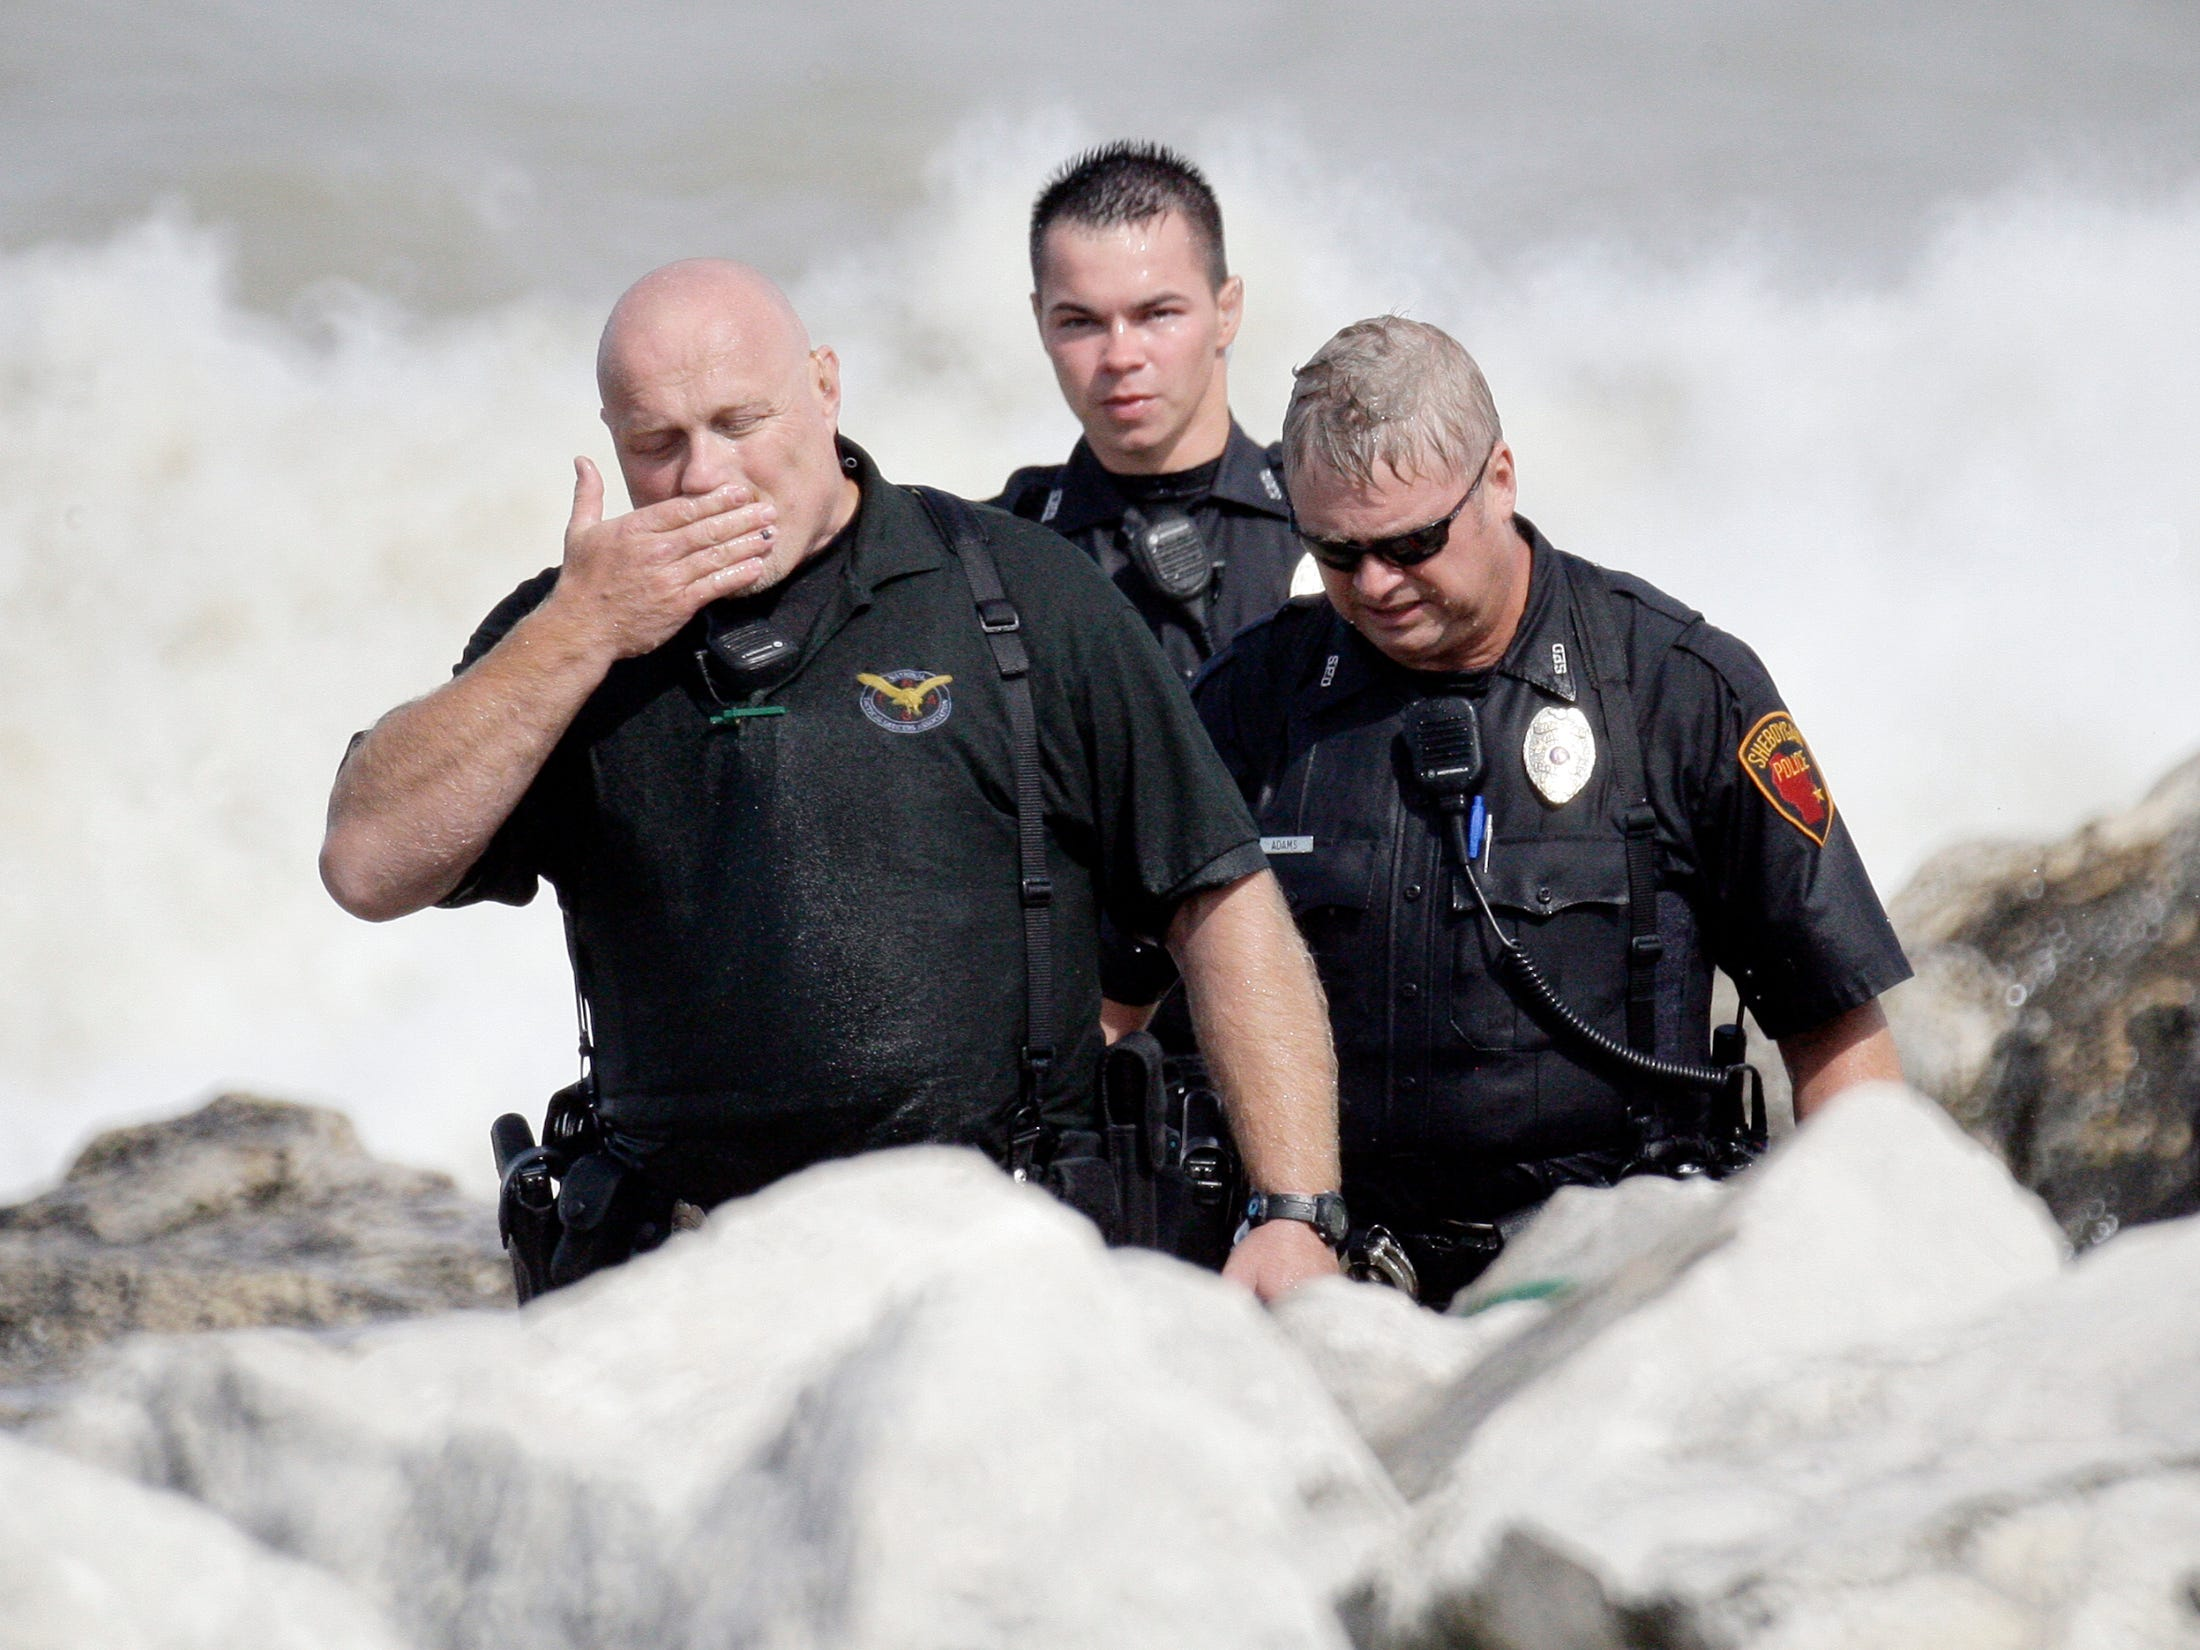 Emotions hit an officer at the scene of a search Aug. 10, 2012, in Sheboygan, Wis.  FILE PHOTO